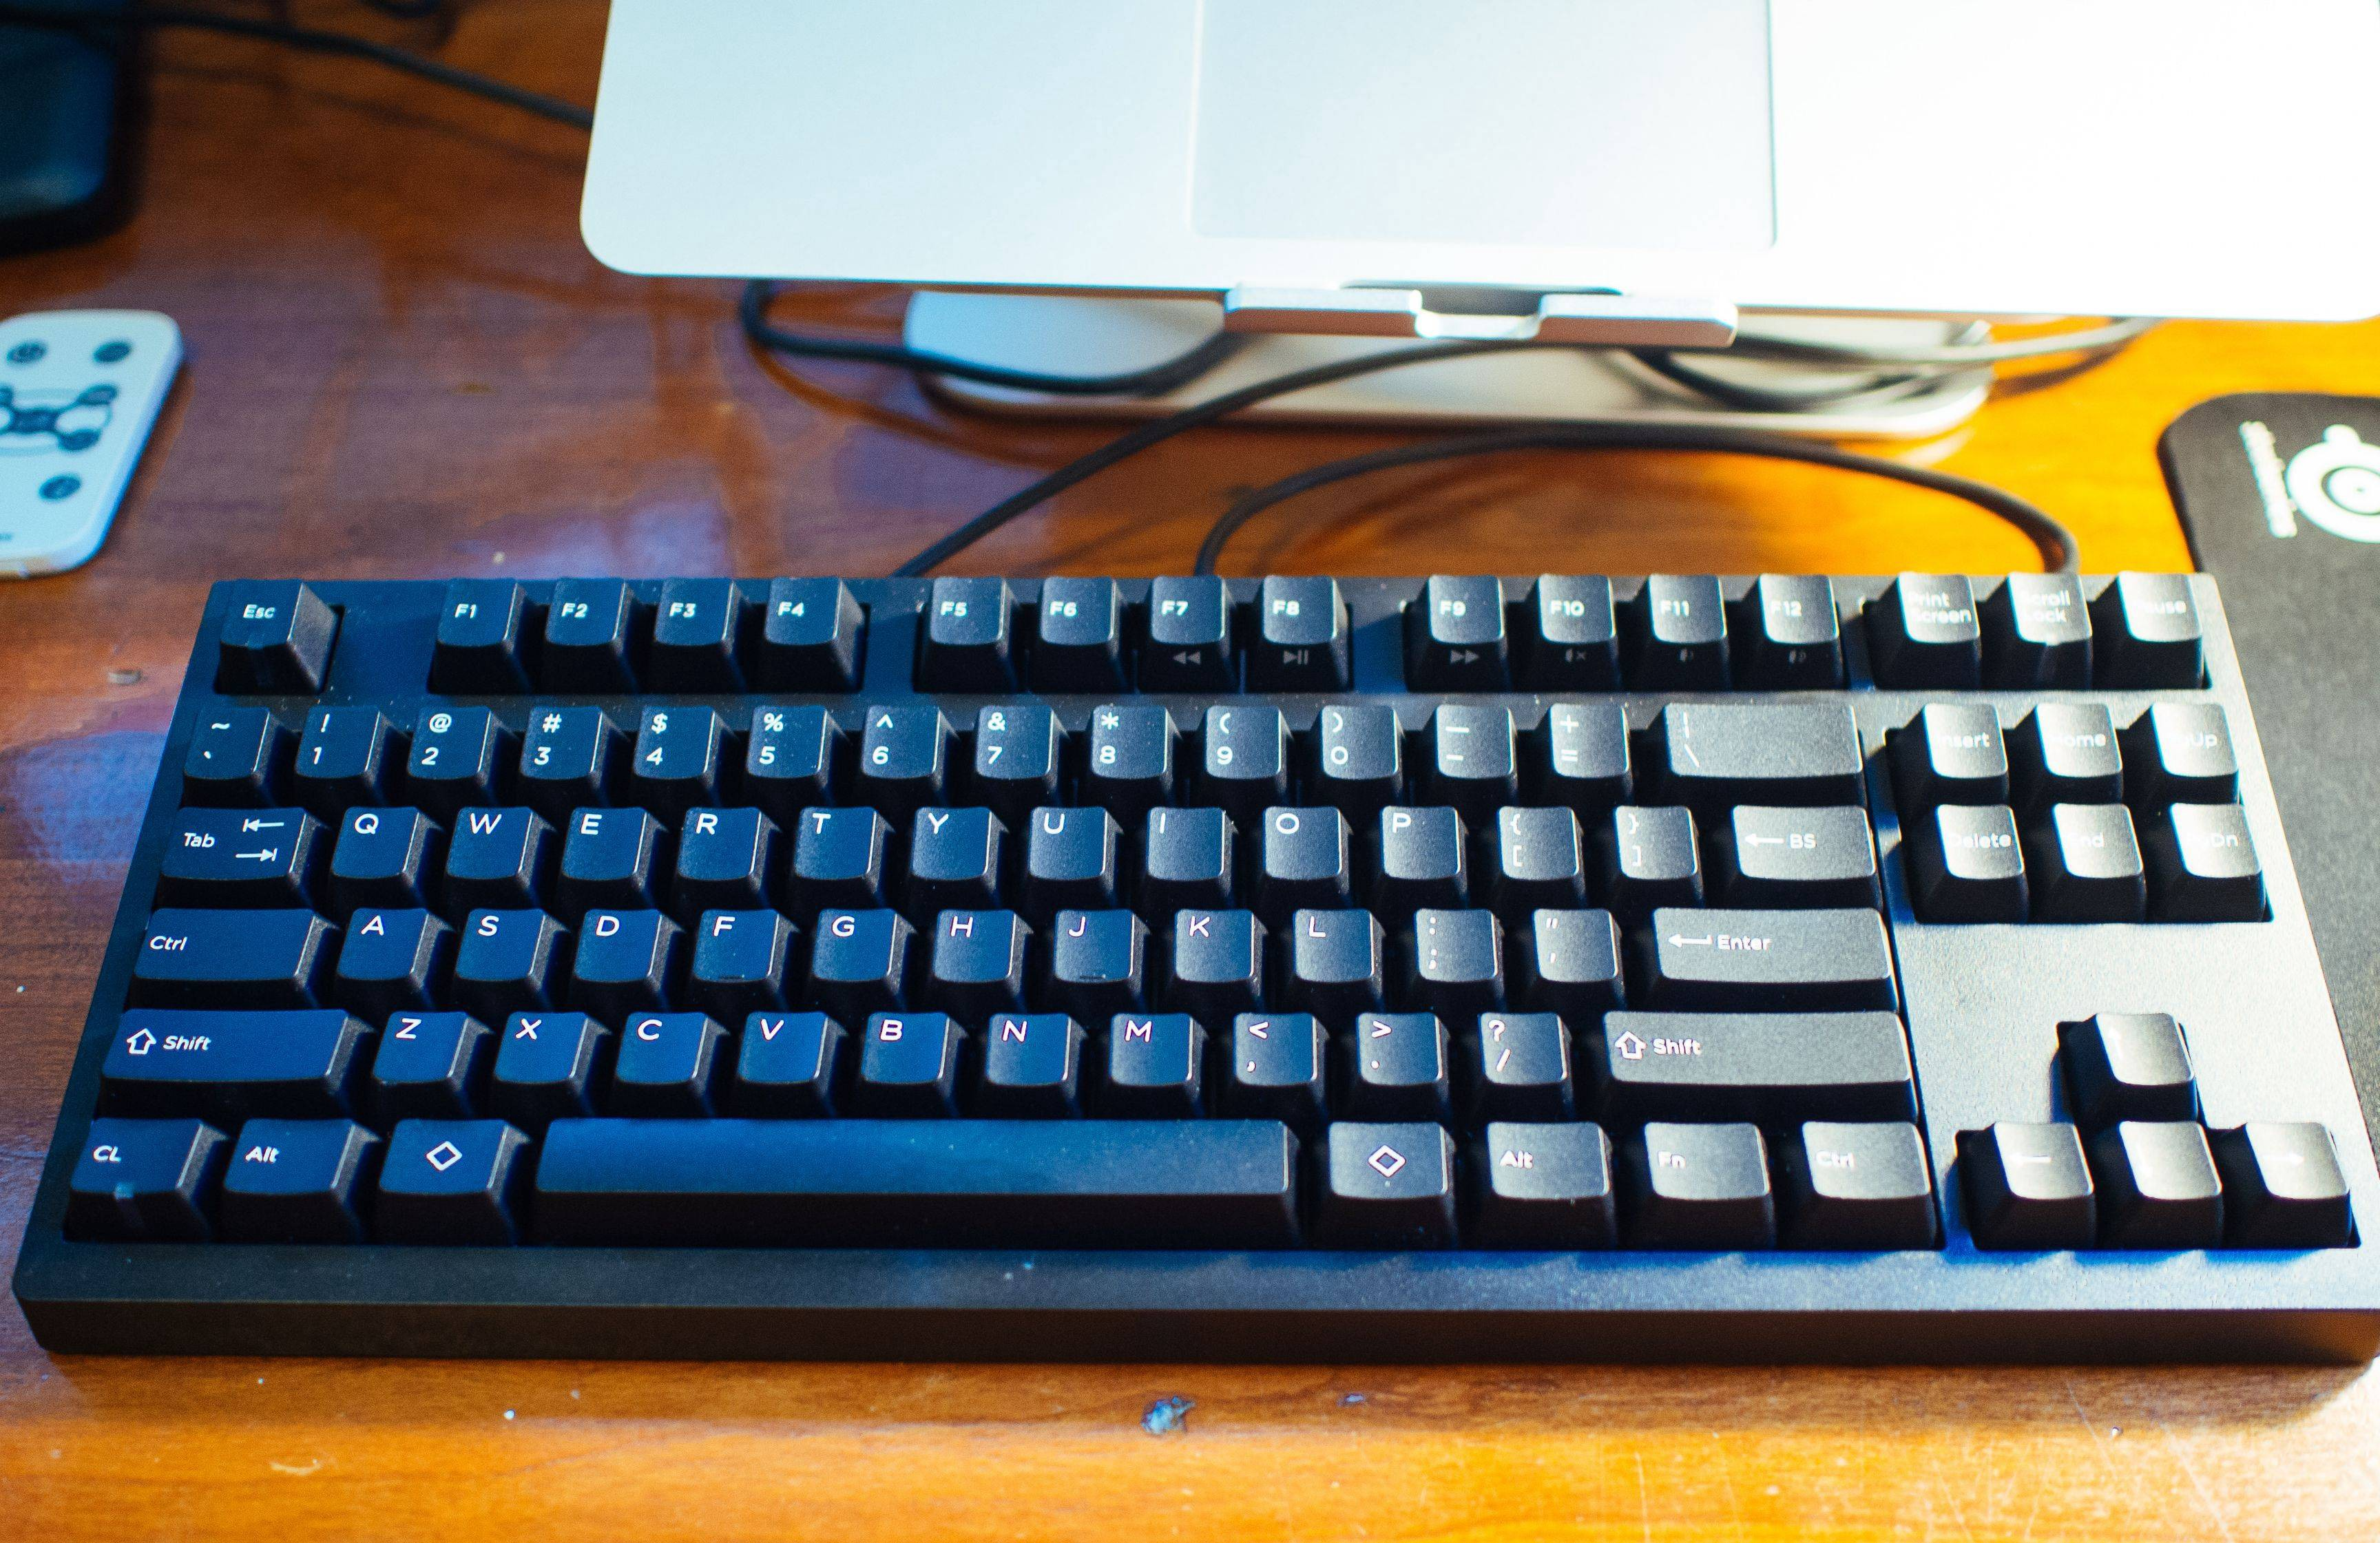 b79d5ae4b01 My Latest Obsession: Mechanical Keyboards - Adventures in Consumer ...